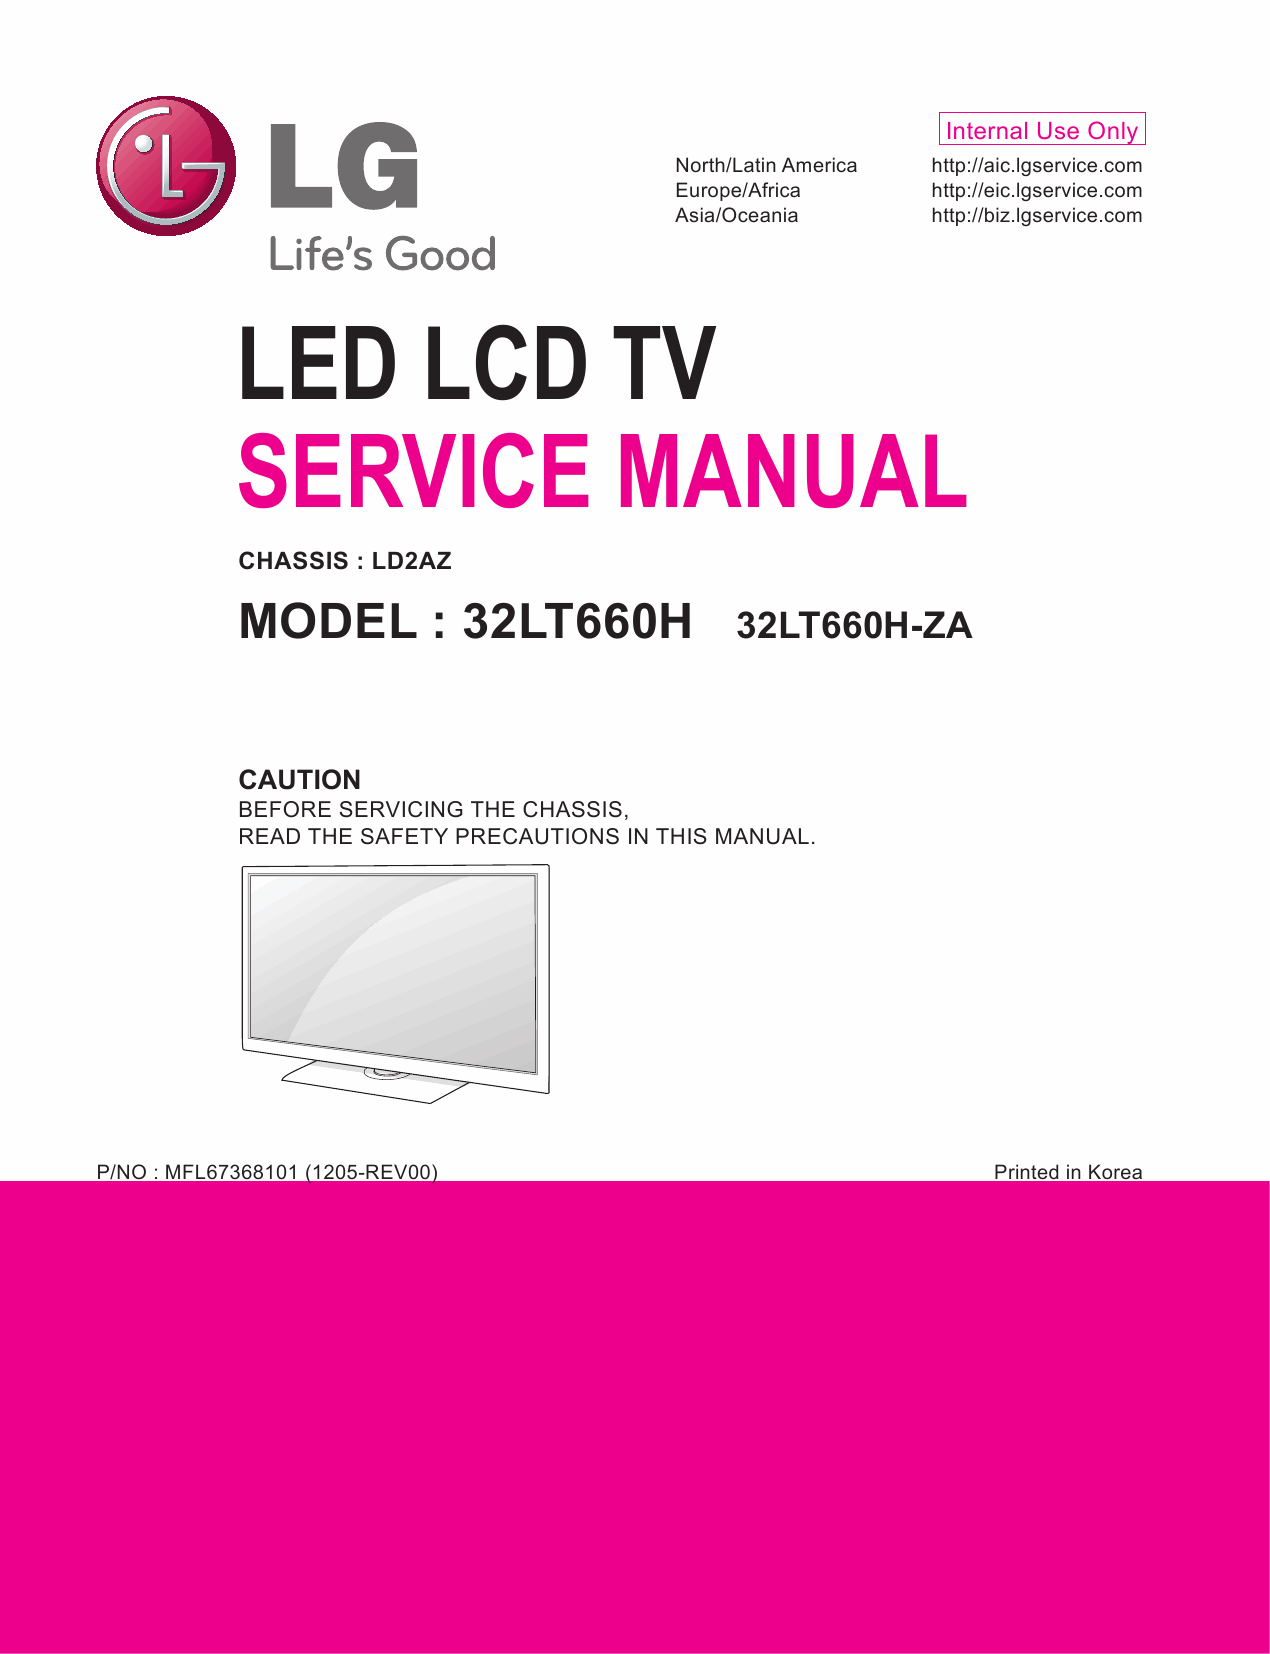 LG_LED_TV_32LT660H_Service_Manual_2012_Qmanual.com-1